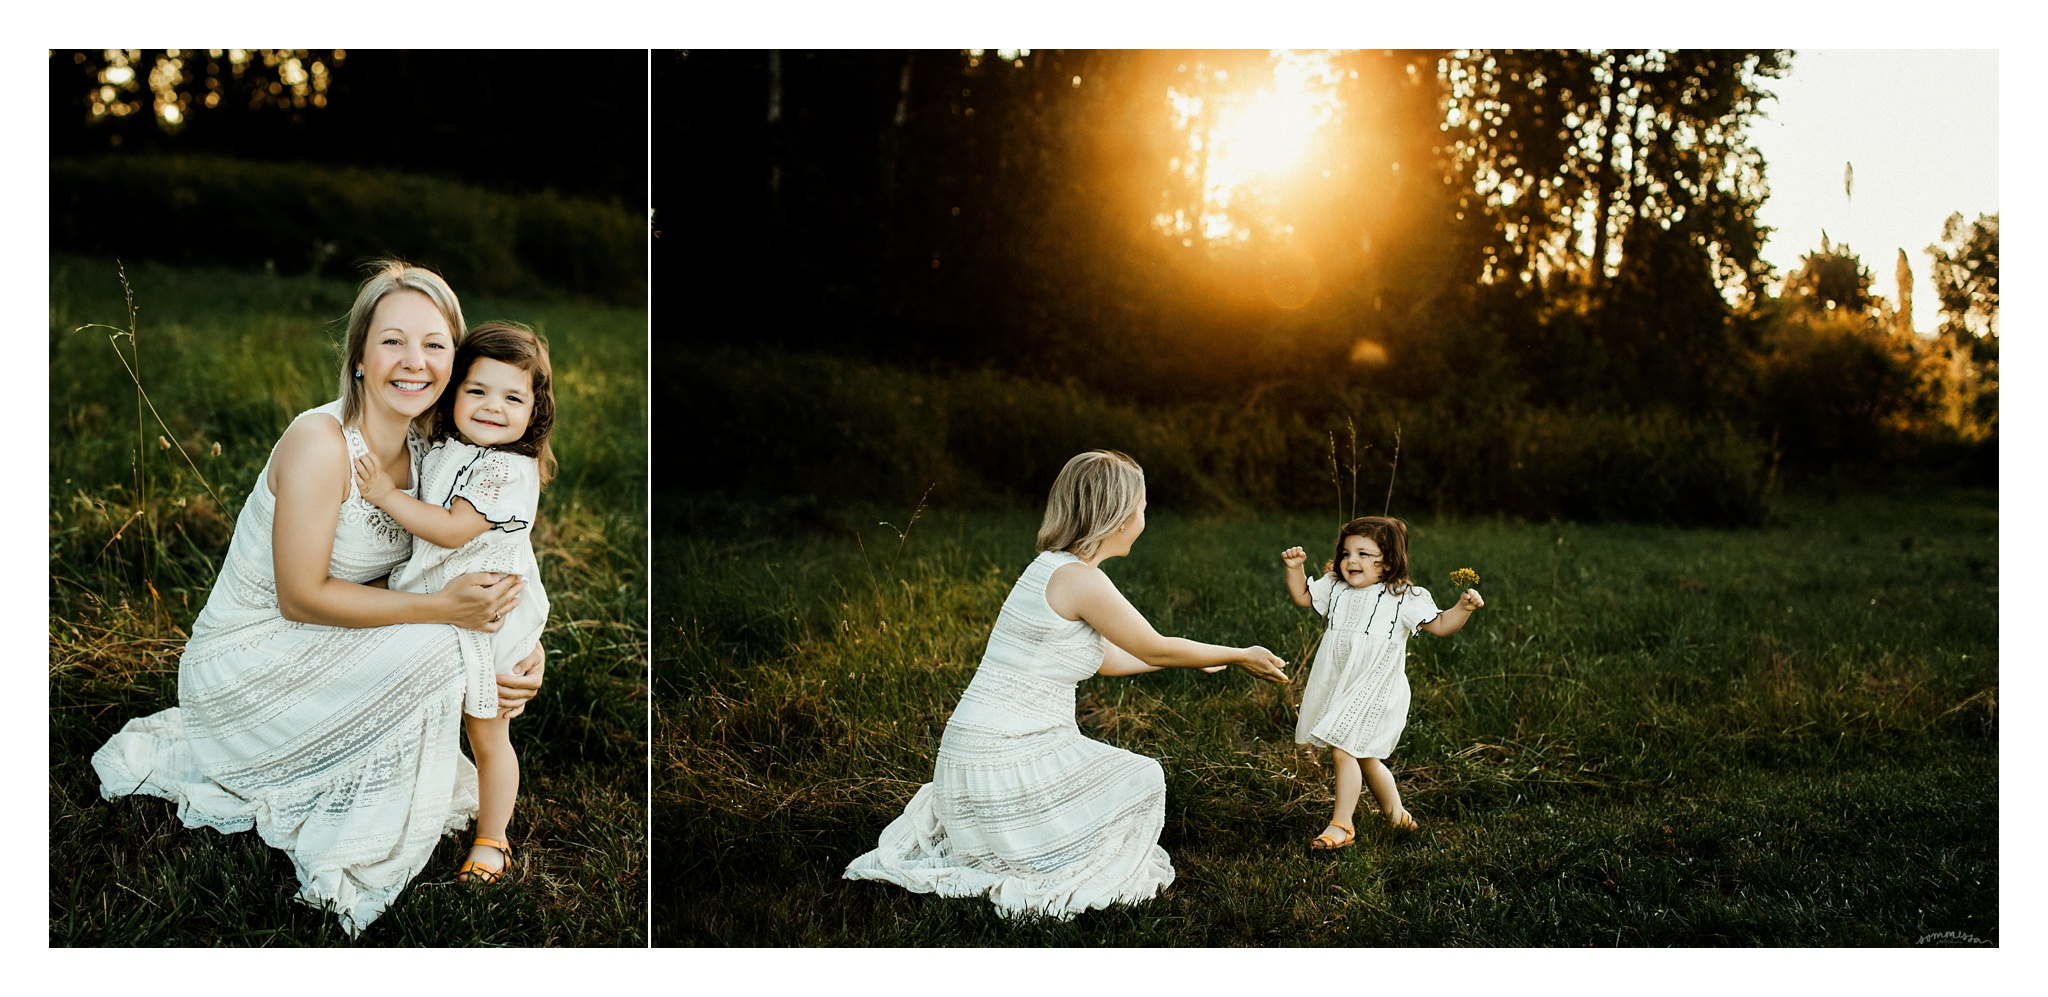 Mother Daughter Family Photography Portland, Oregon_3311.jpg